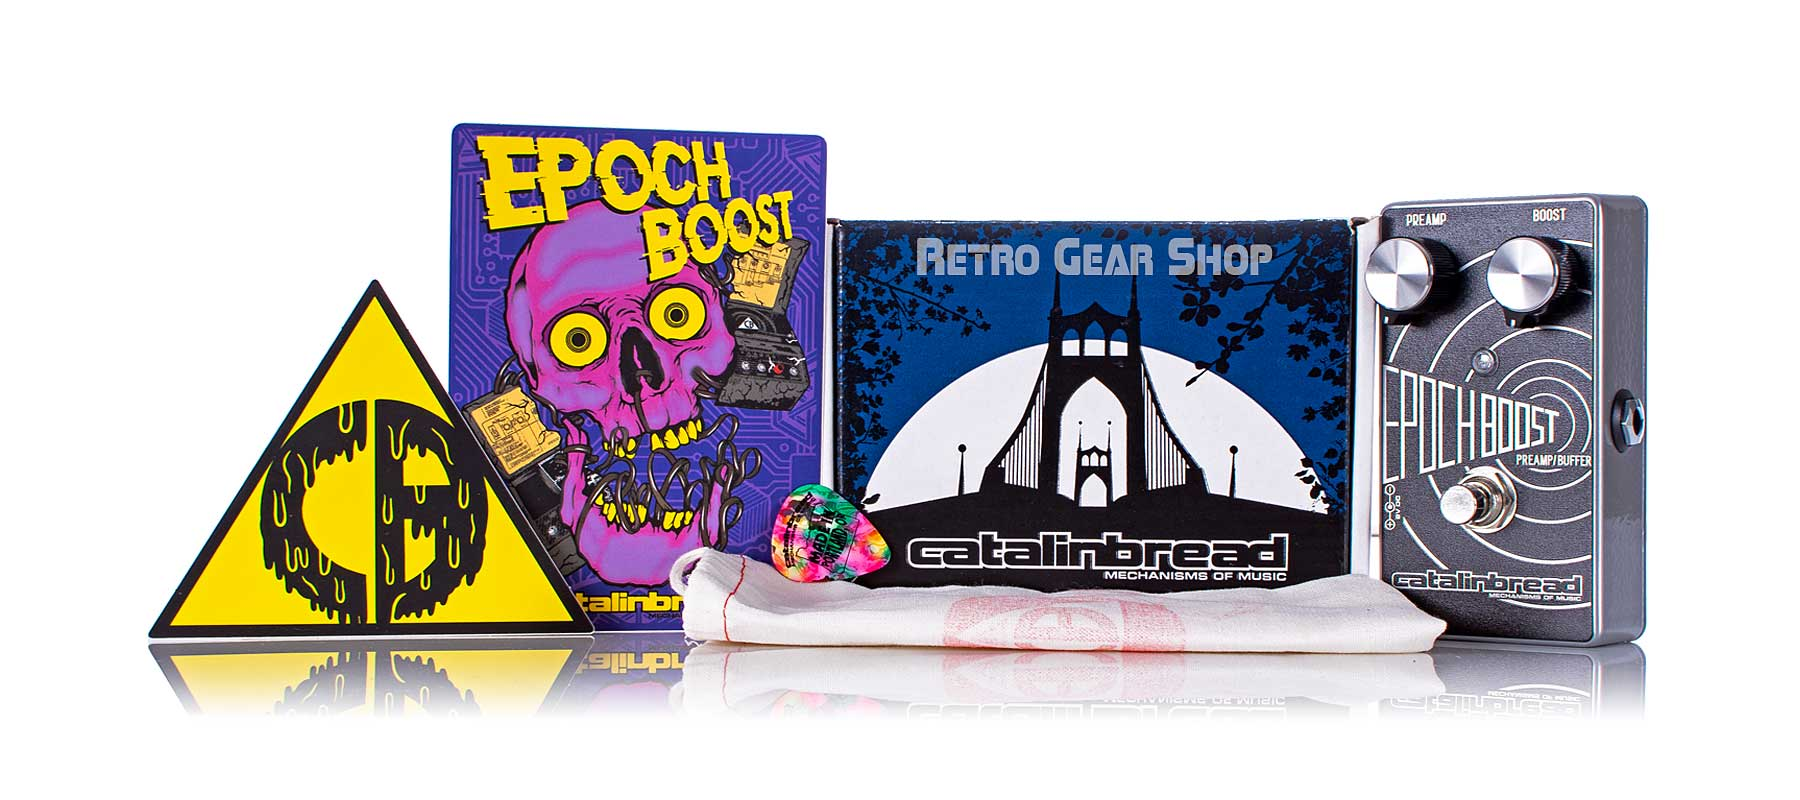 Catalinbread Epoch Boost Box Manual Extras